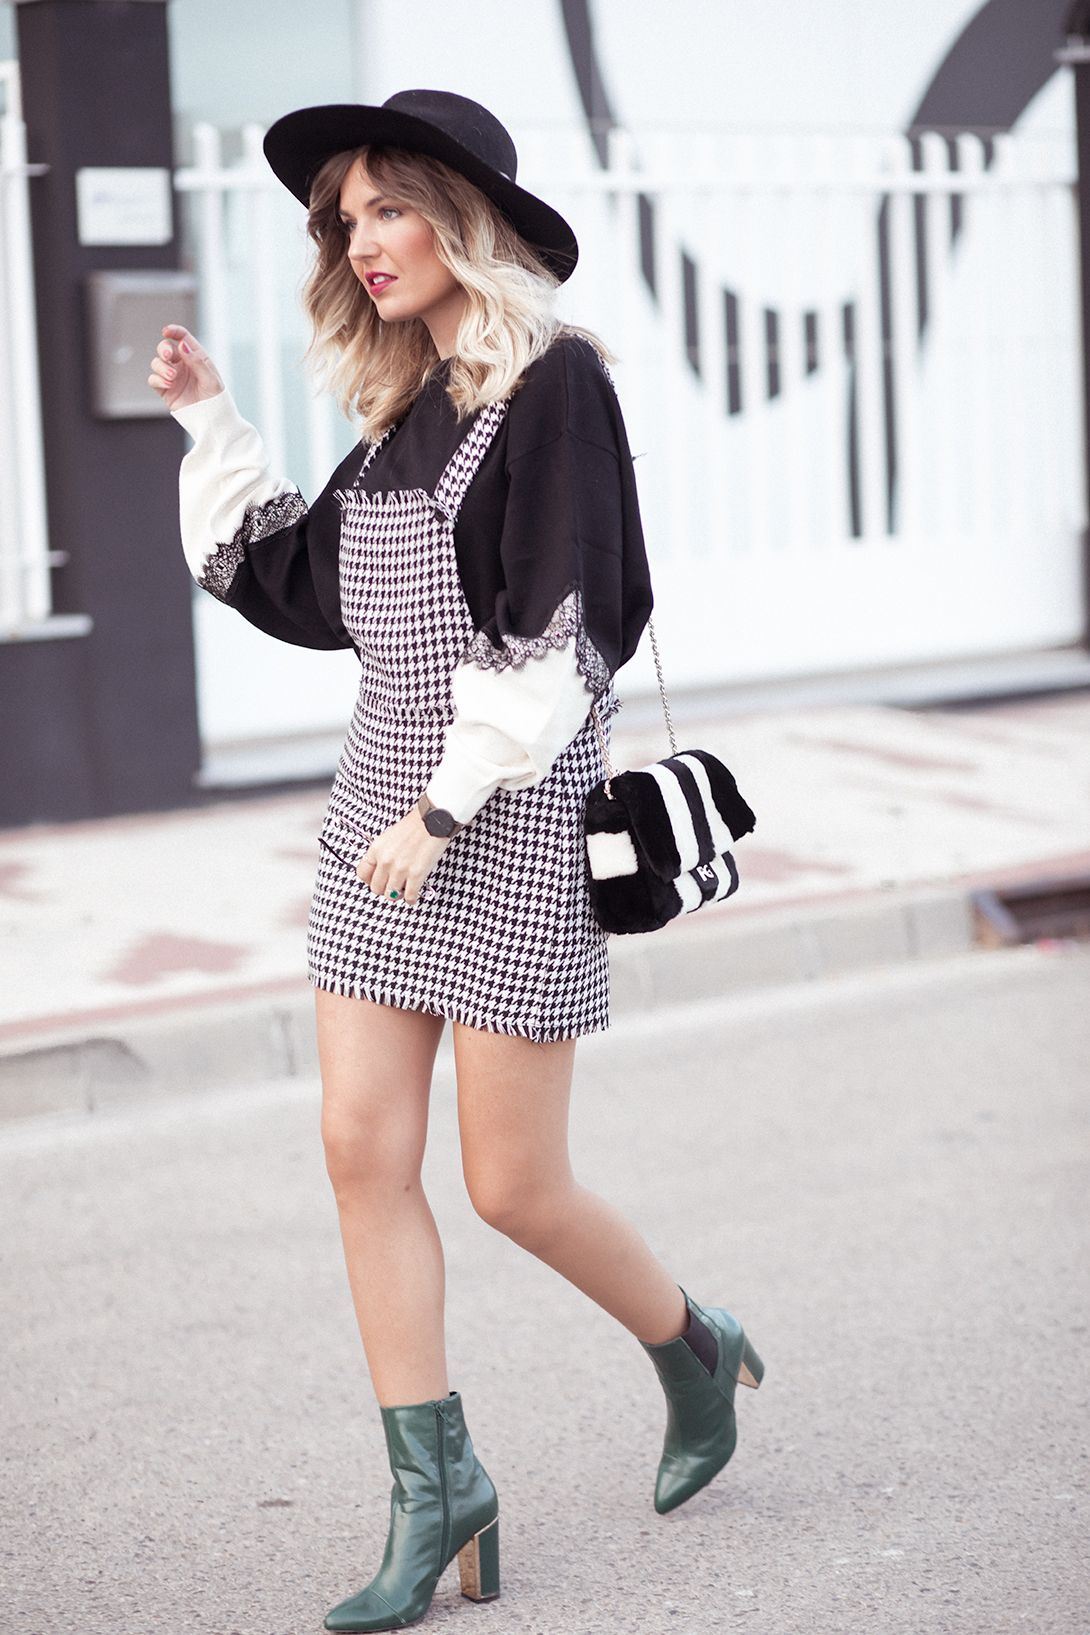 862810dadbc Black and white sweatshirt+houndstooth overall- dress+dark green heeled  boots+black and white fur chain shoulder bag+black hat. Fall Casual Outfit  2017